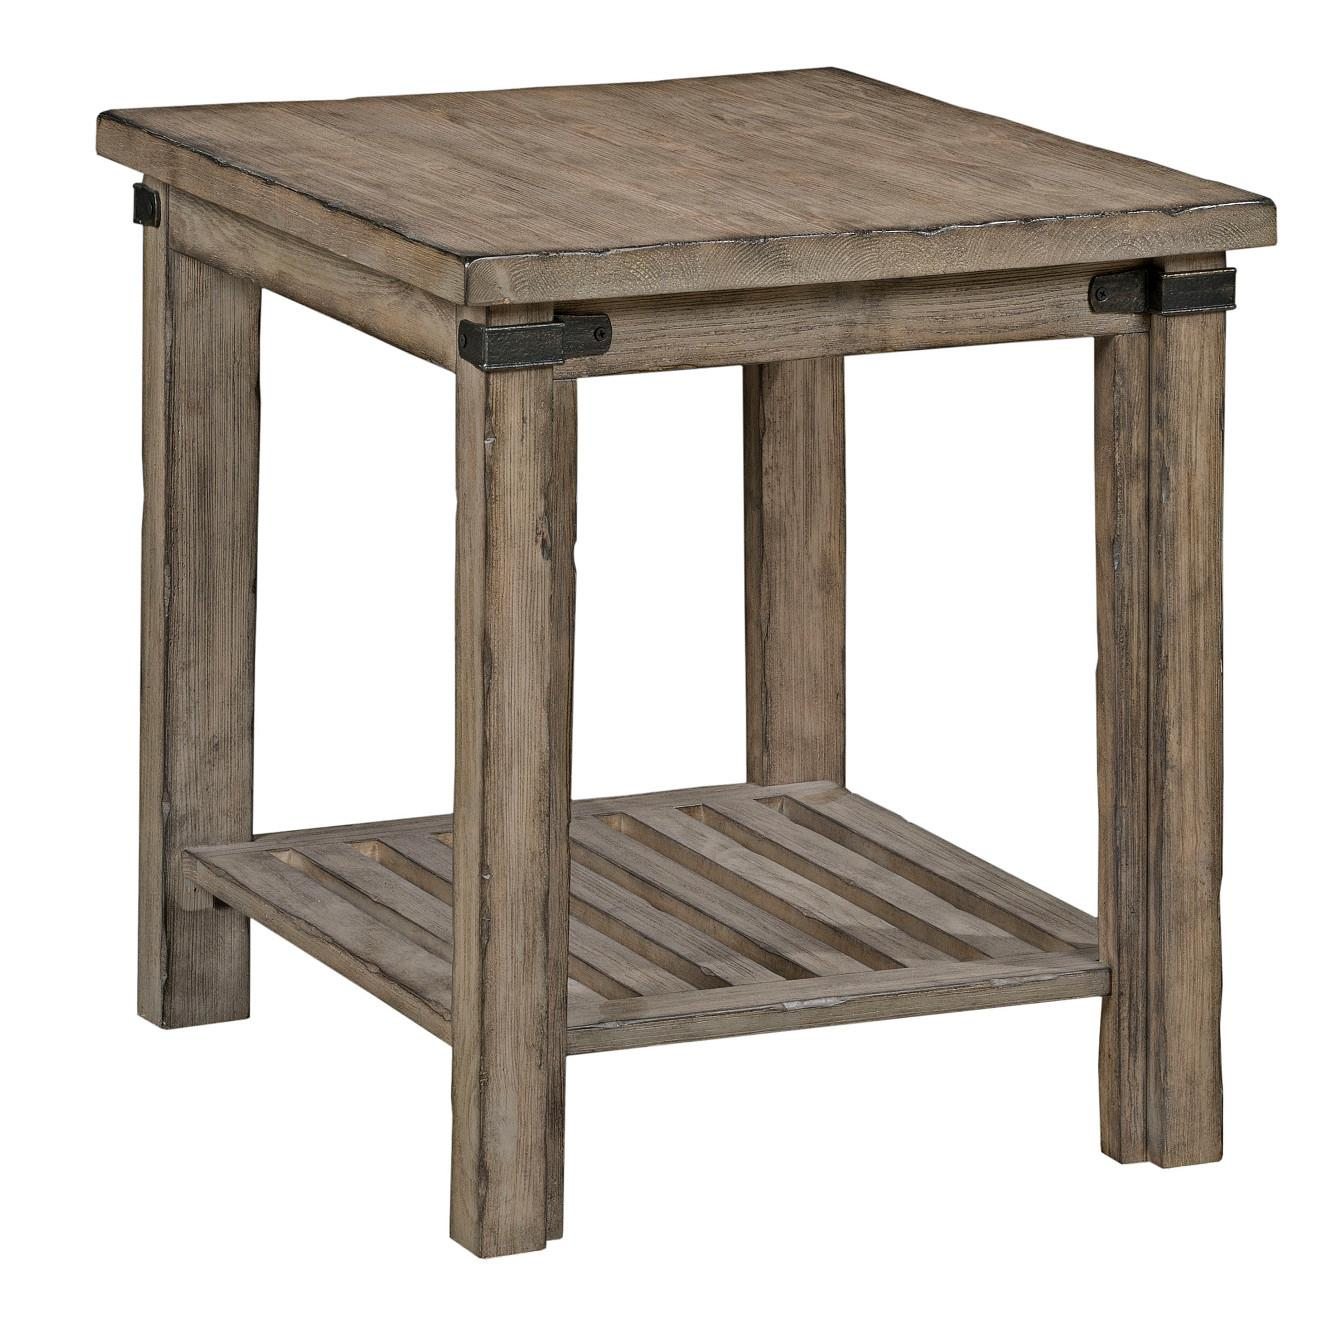 Rustic Wood End Table Foundry Rustic Weathered Gray End Table By Kincaid Furniture At Lindy S Furniture Company